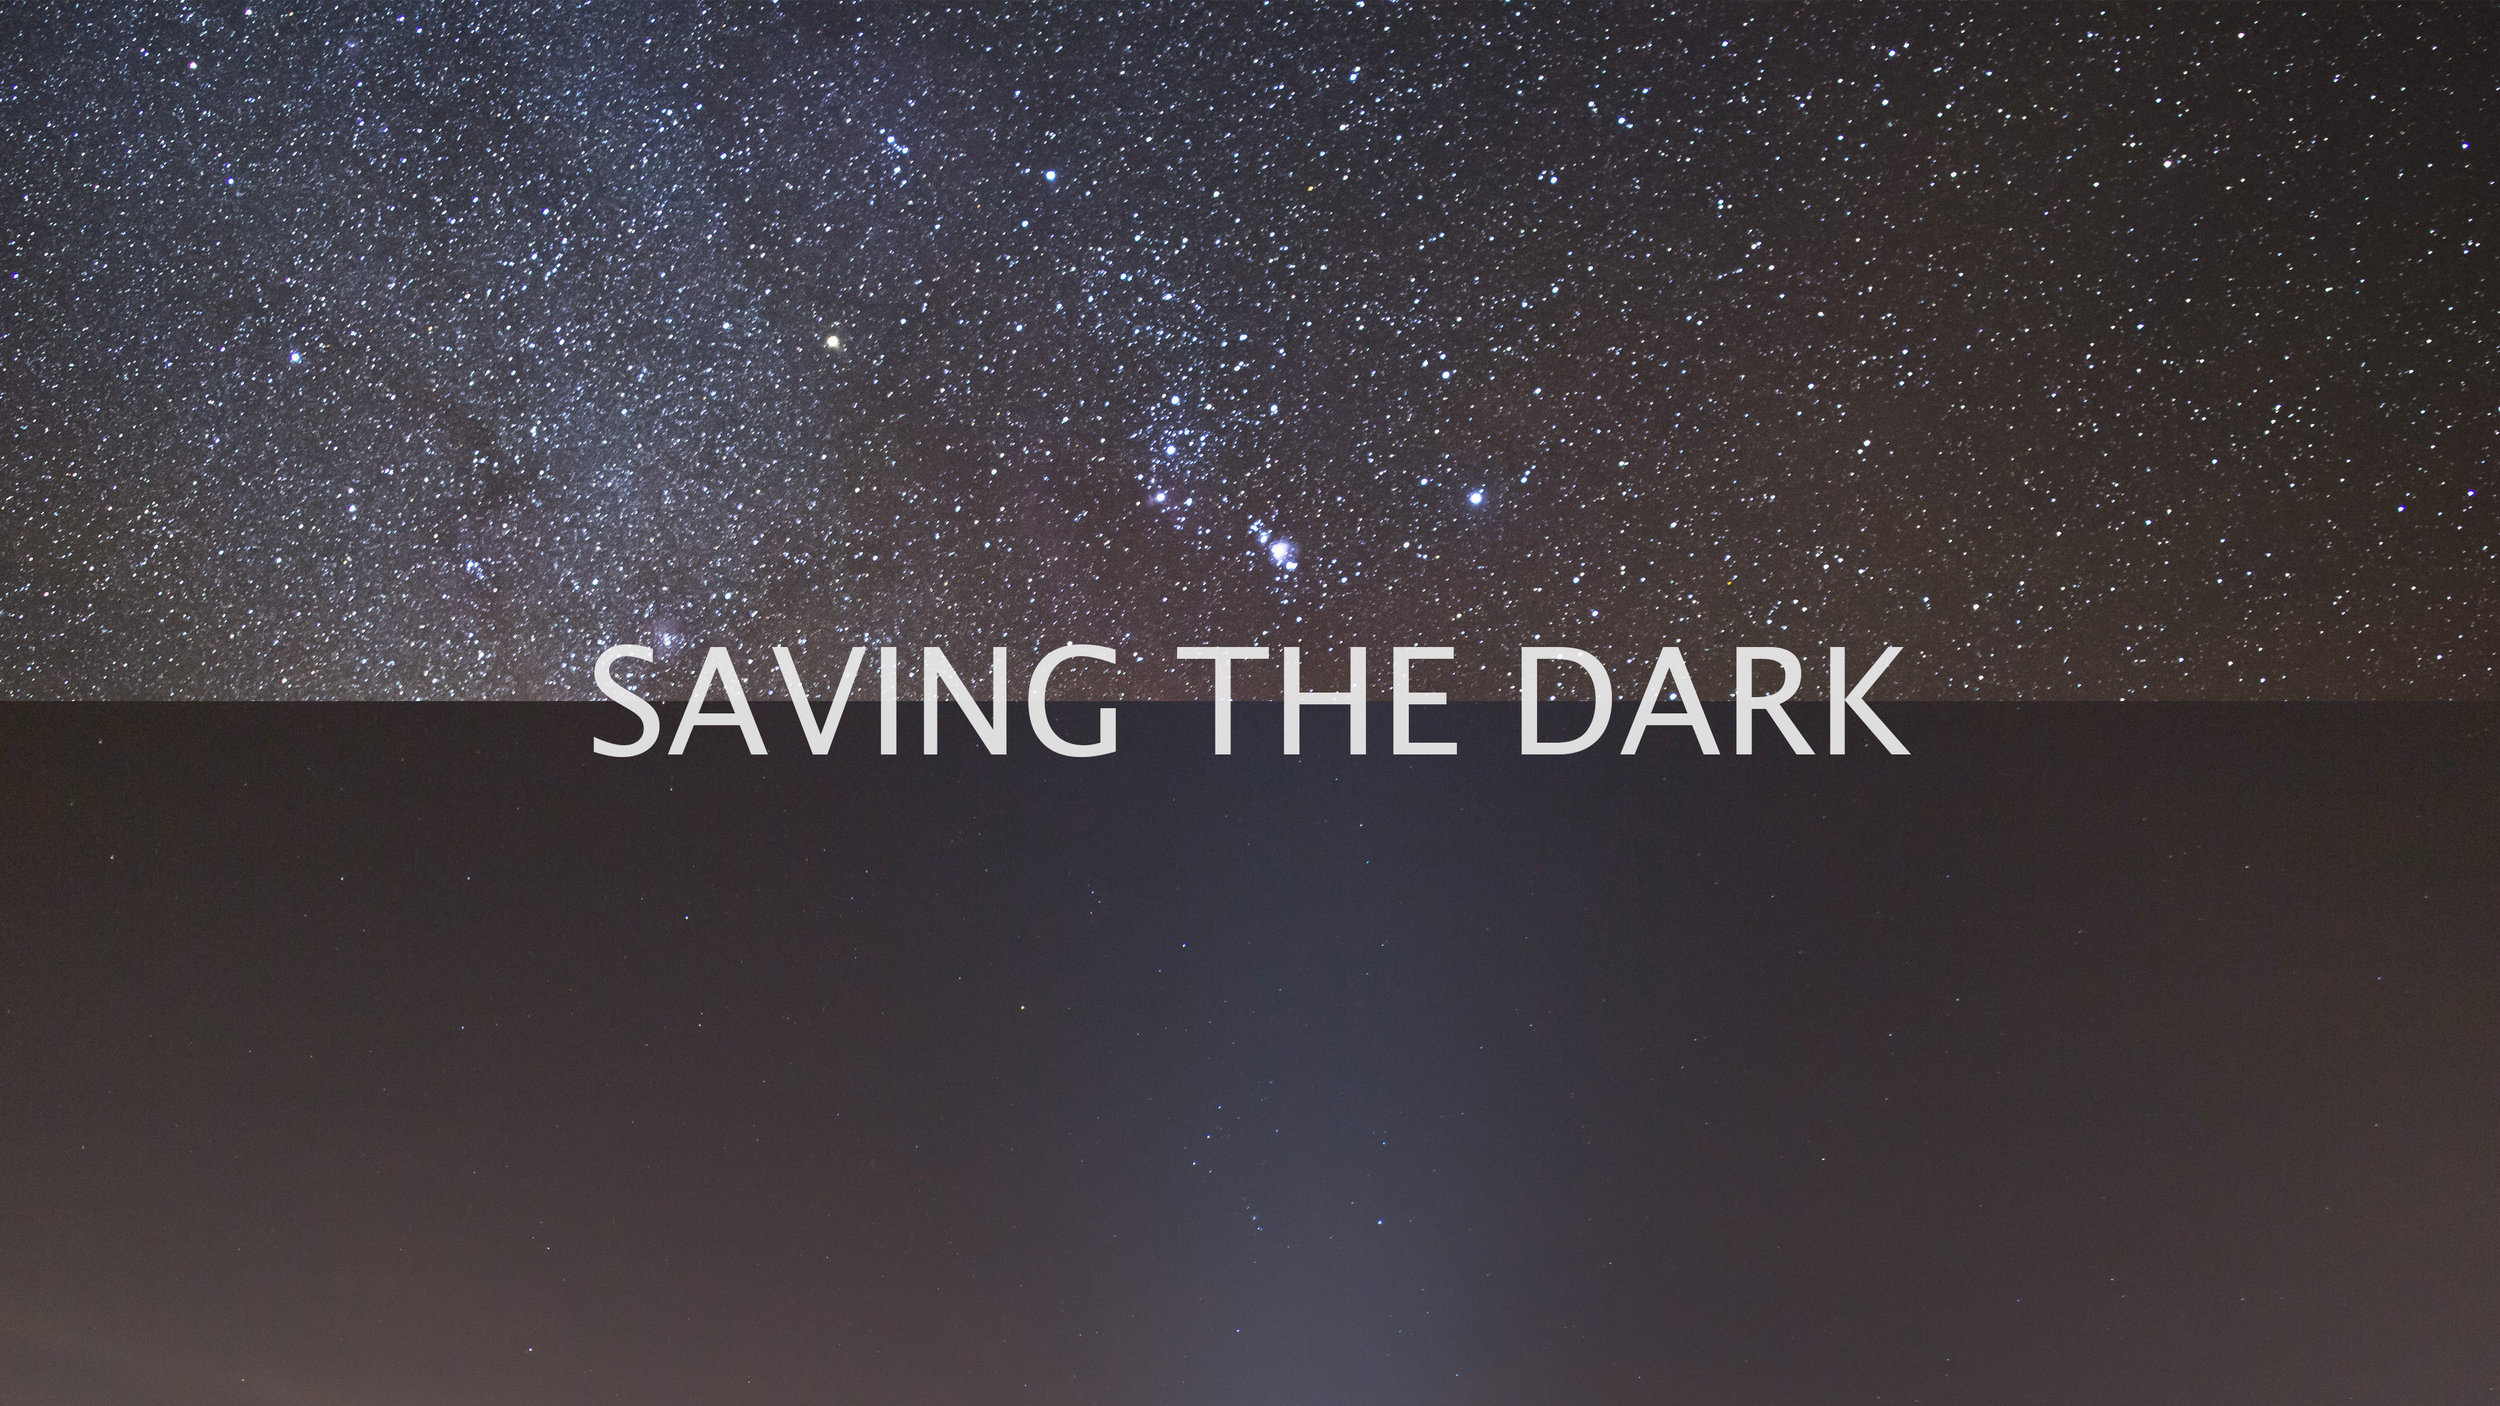 Saving the Dark - Orion.jpg